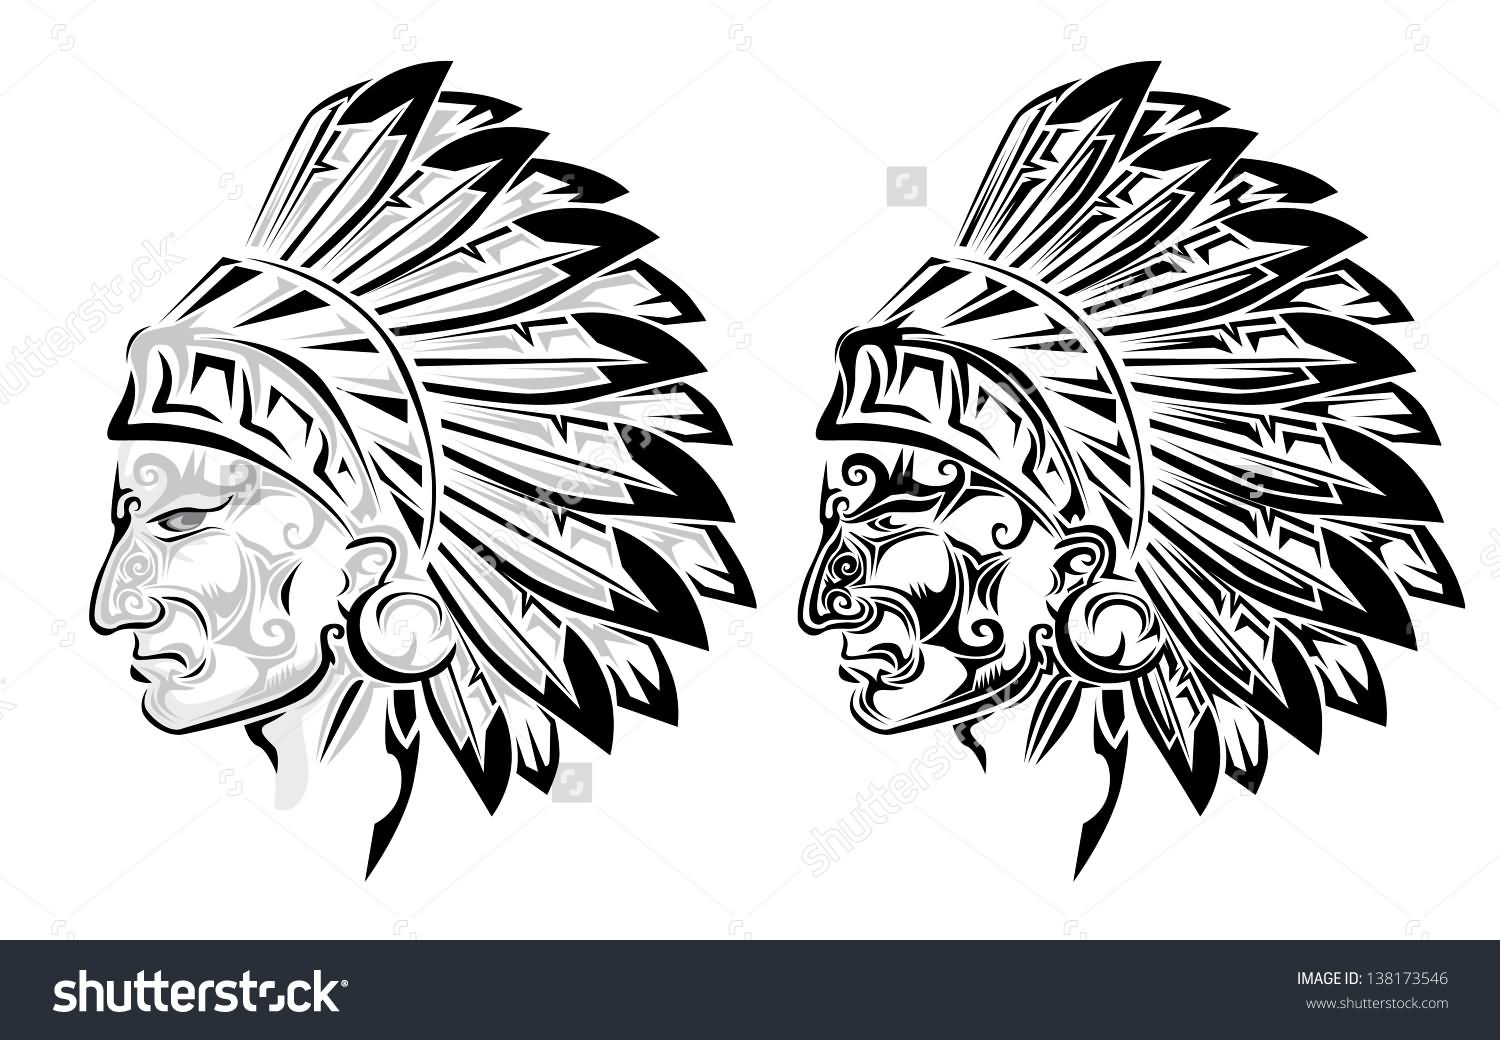 26 Indian Chief Tattoos And Designs Ideas Ideas And Designs